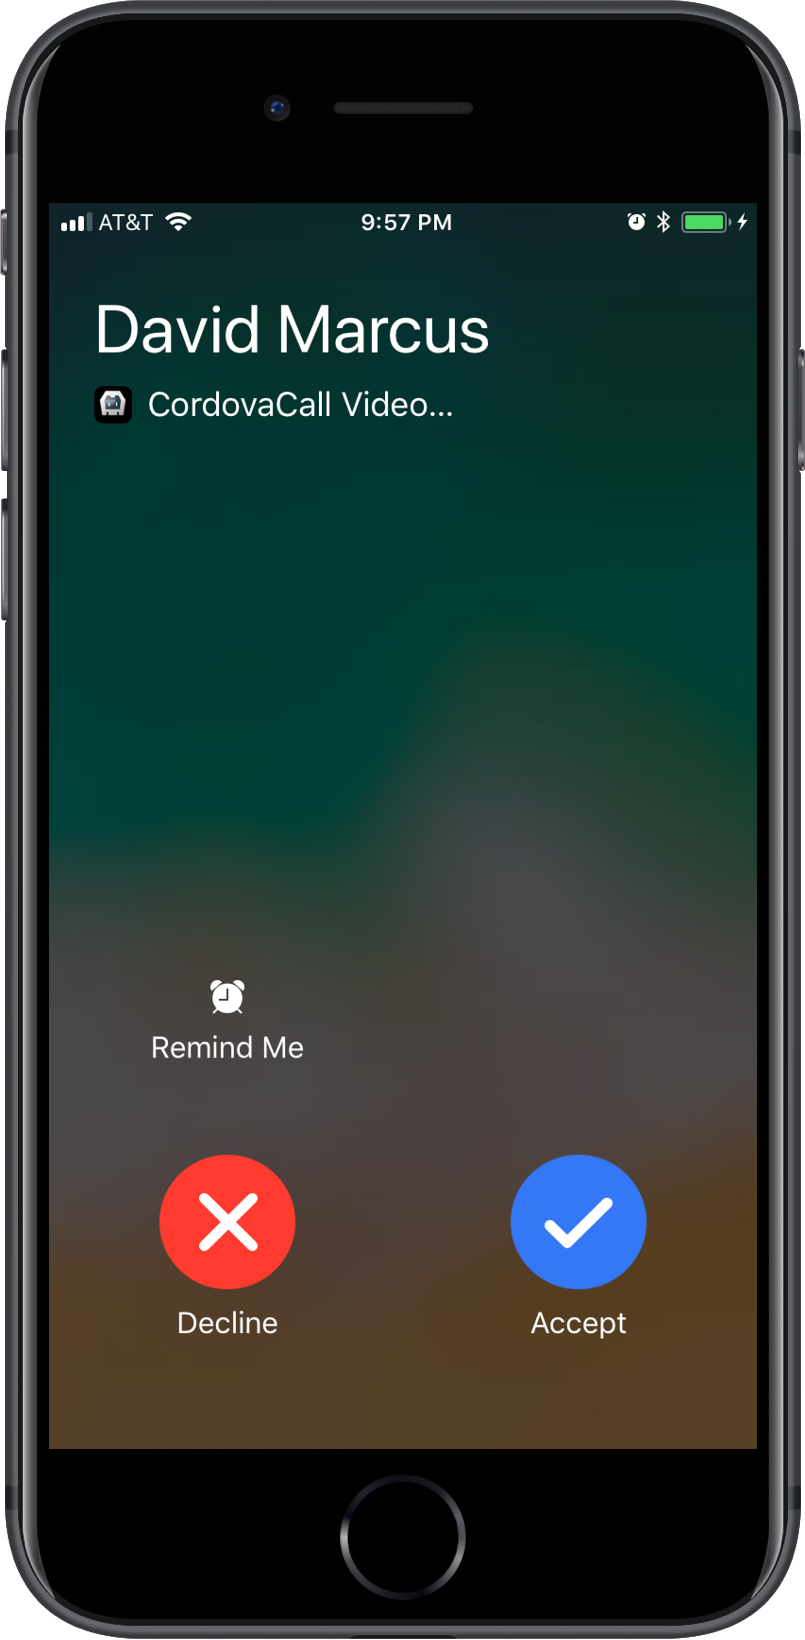 CordovaCall Video Instead Of Audio iOS CallKit